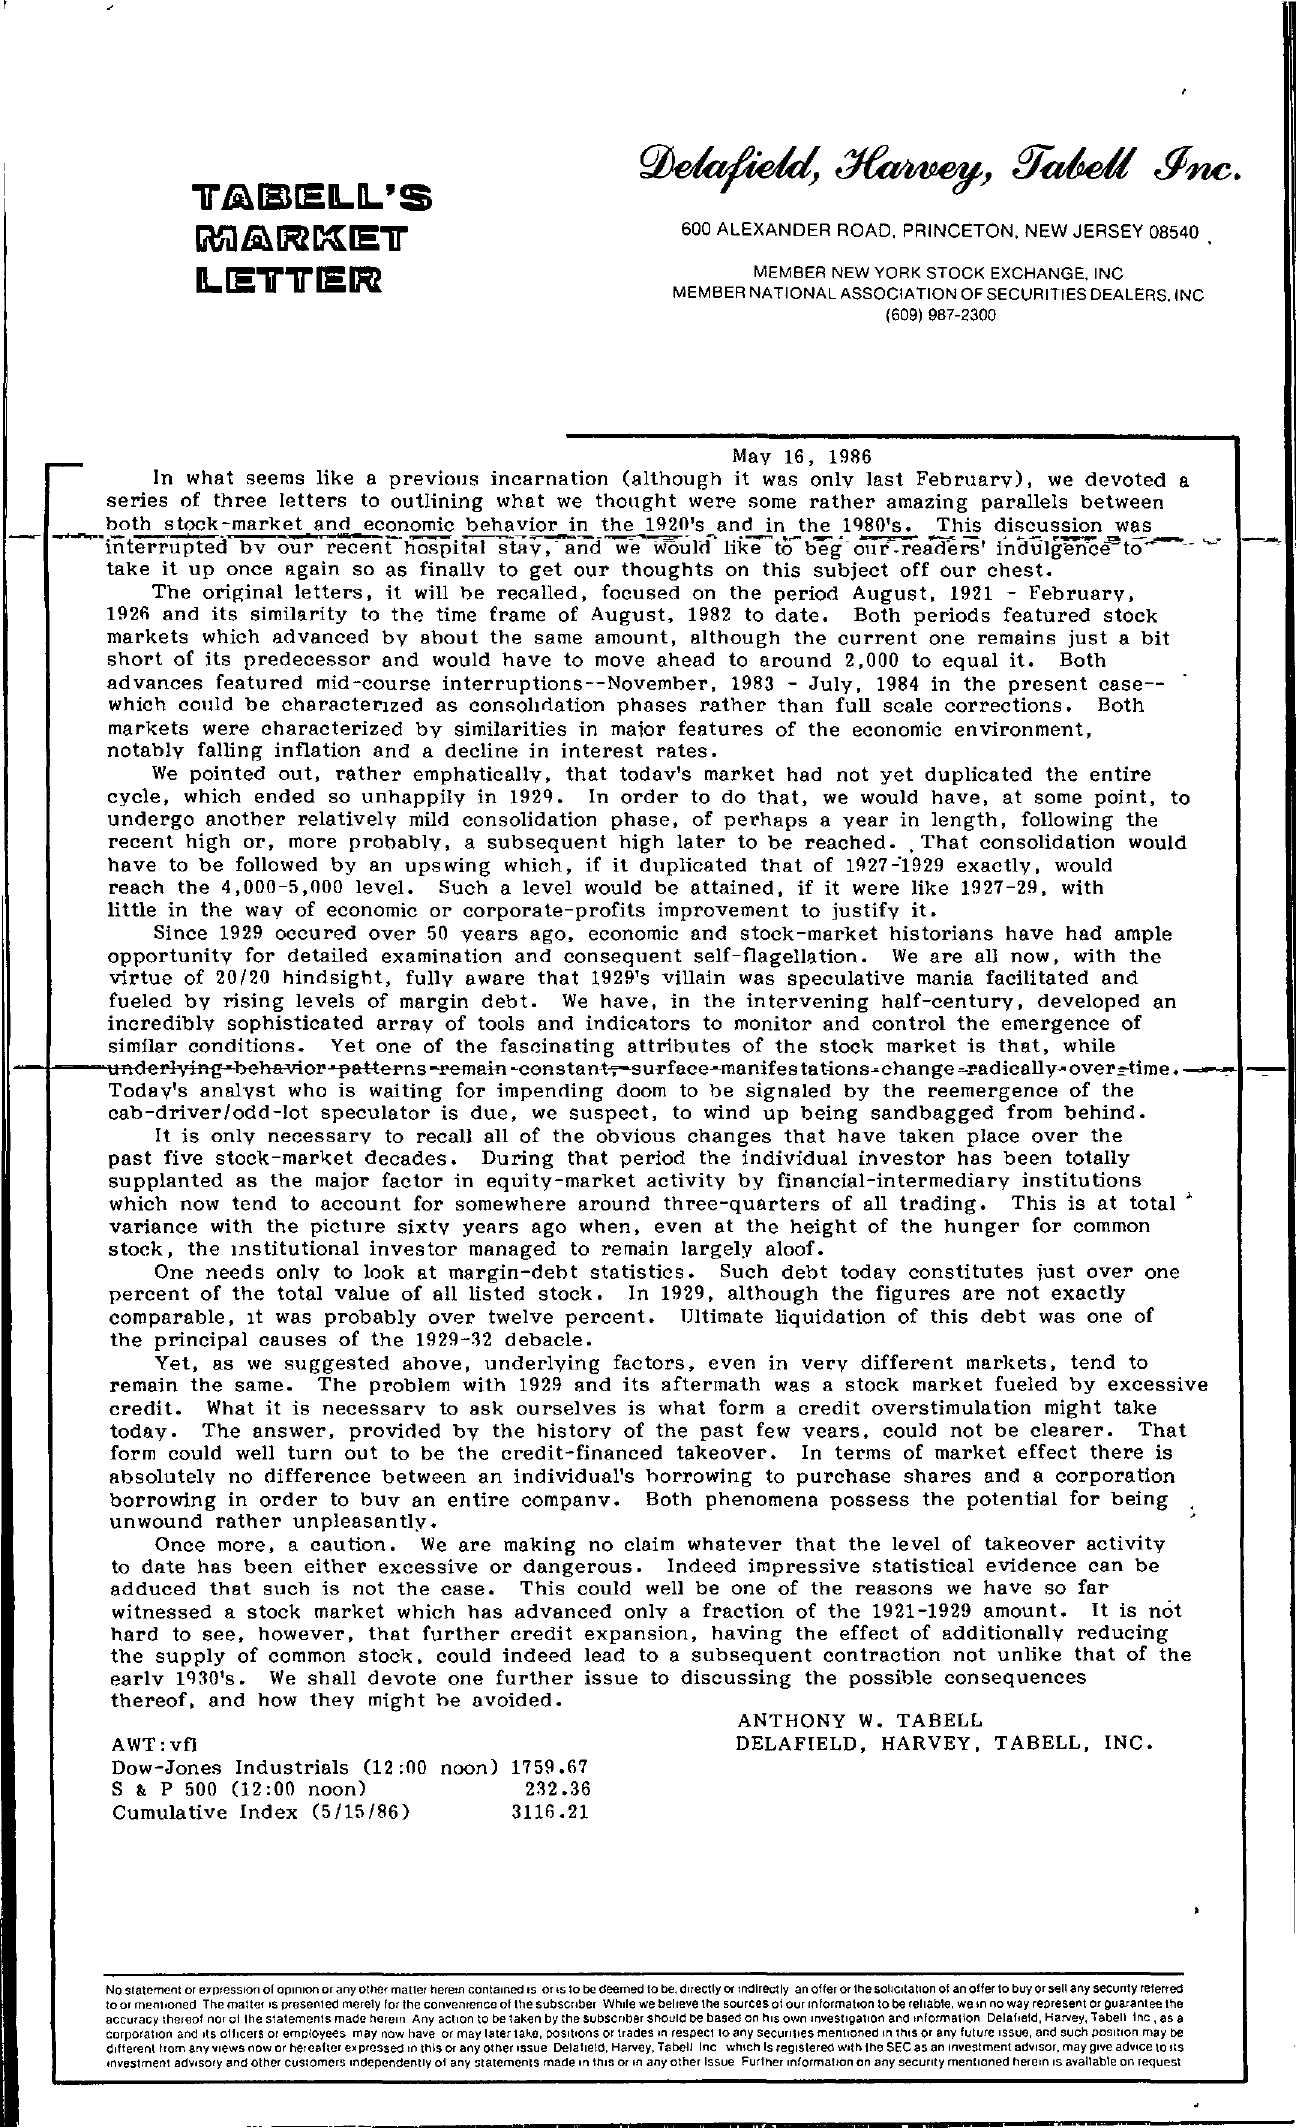 Tabell's Market Letter - May 16, 1986